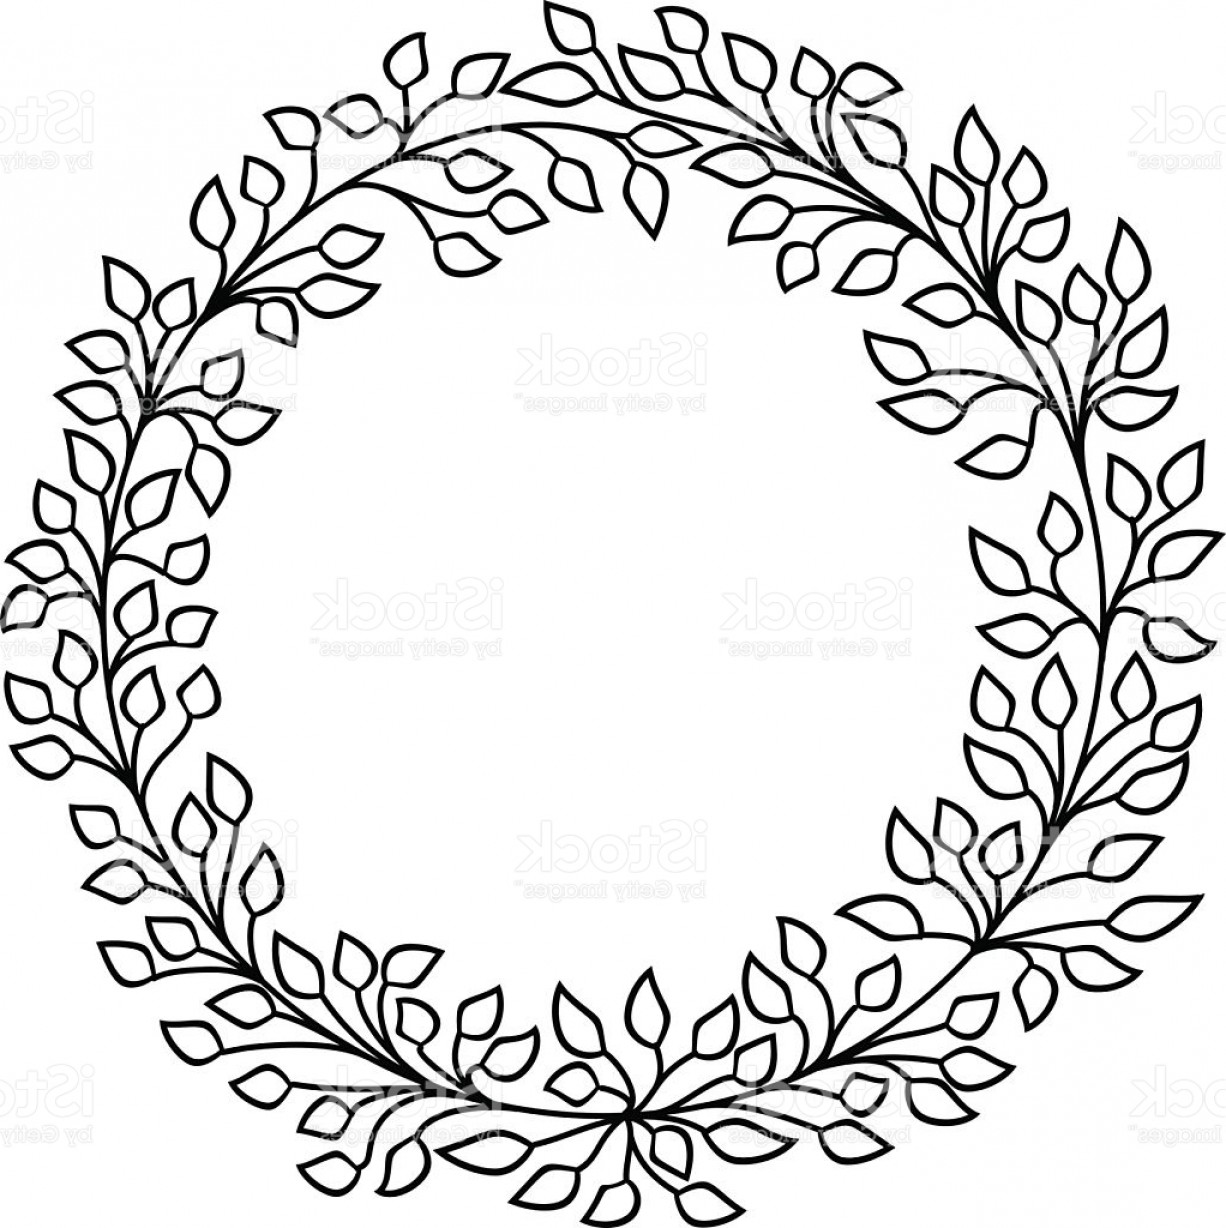 Floral Wreath Clipart Black And White (102+ images in Collection) Page 1.